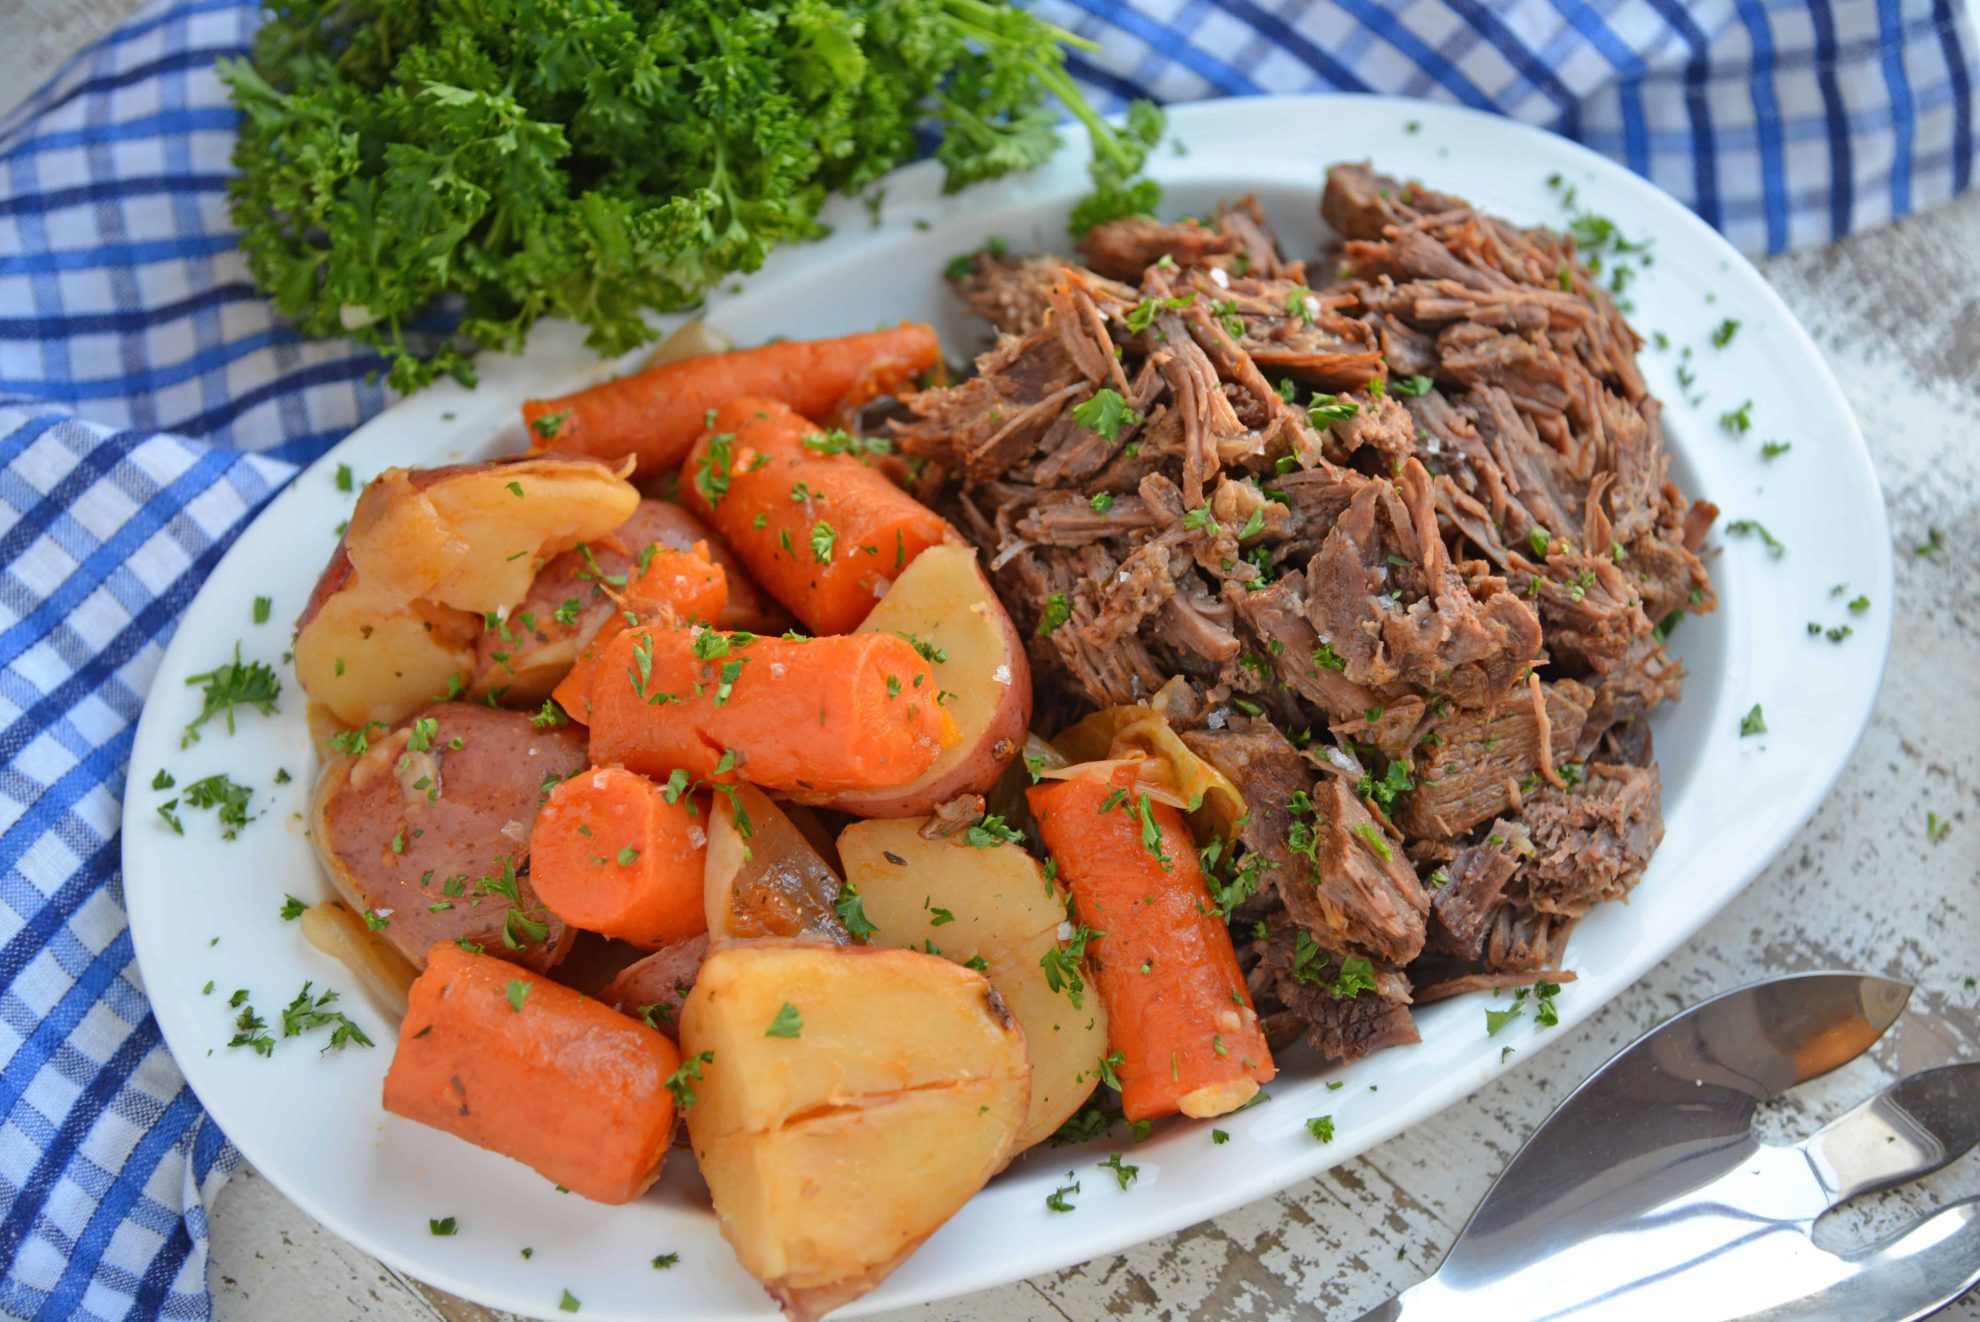 White Platter with Pot Roast, Carrots and Potatoes